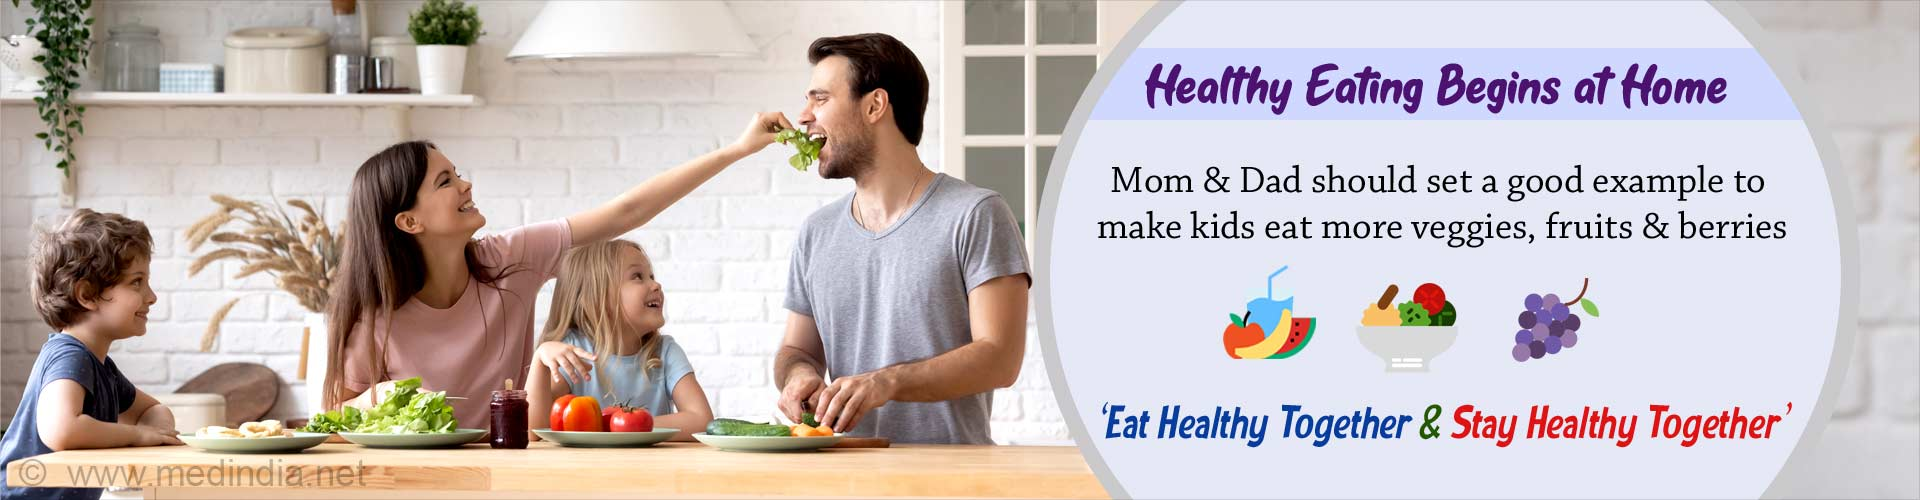 Healthy eating begins at home. Mom and Dad should set a good example to make kids eat more veggies, fruits and berries. Eat healthy together and stay healthy together.